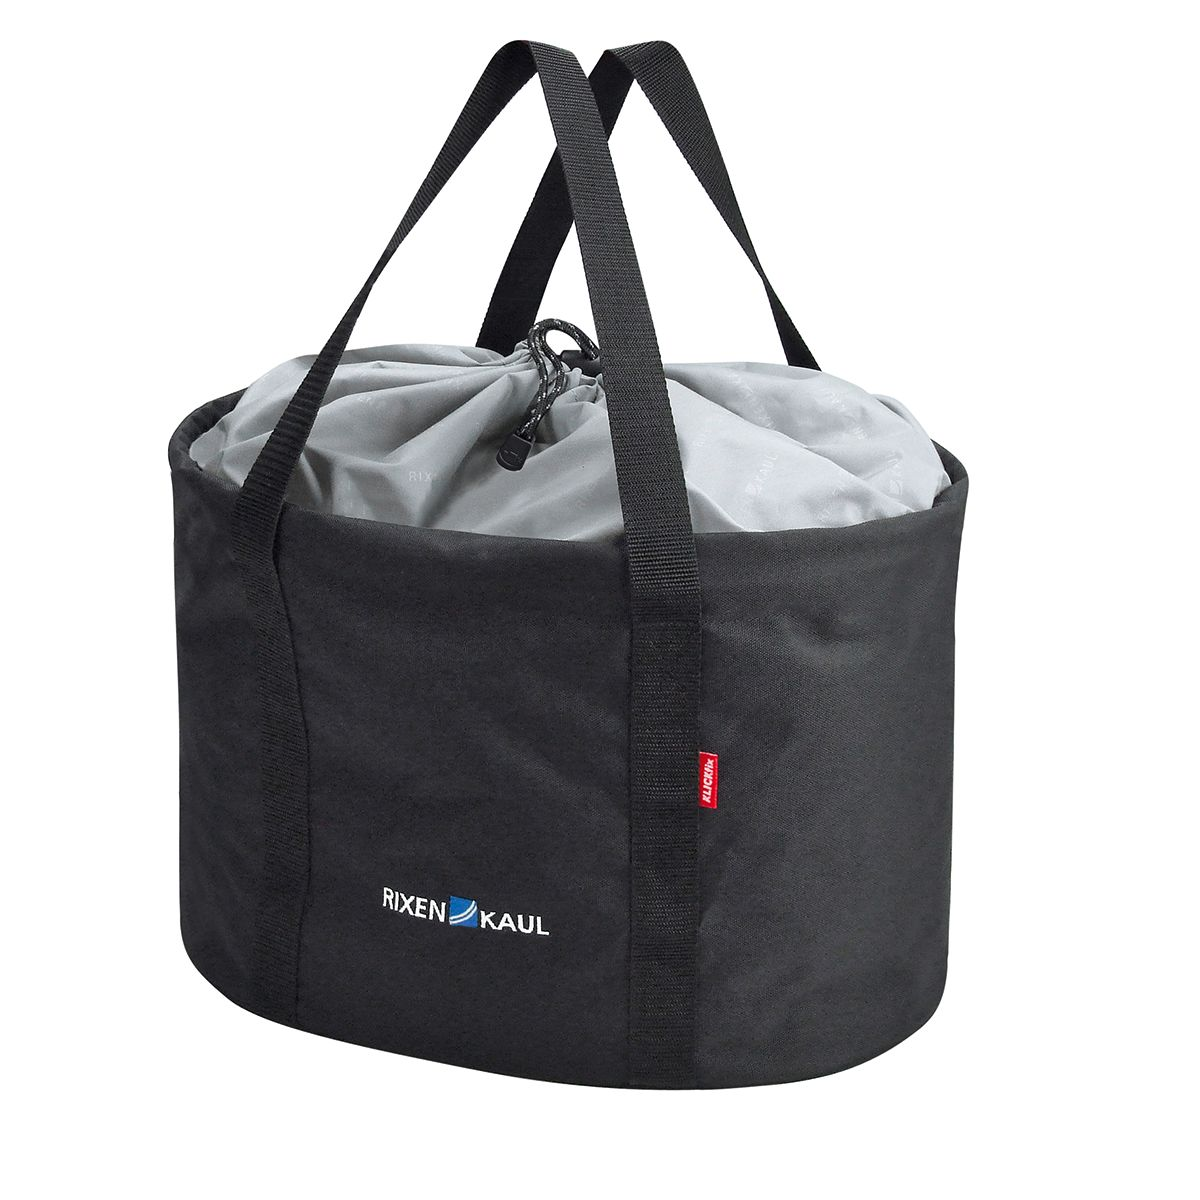 SHOPPER PRO bike basket